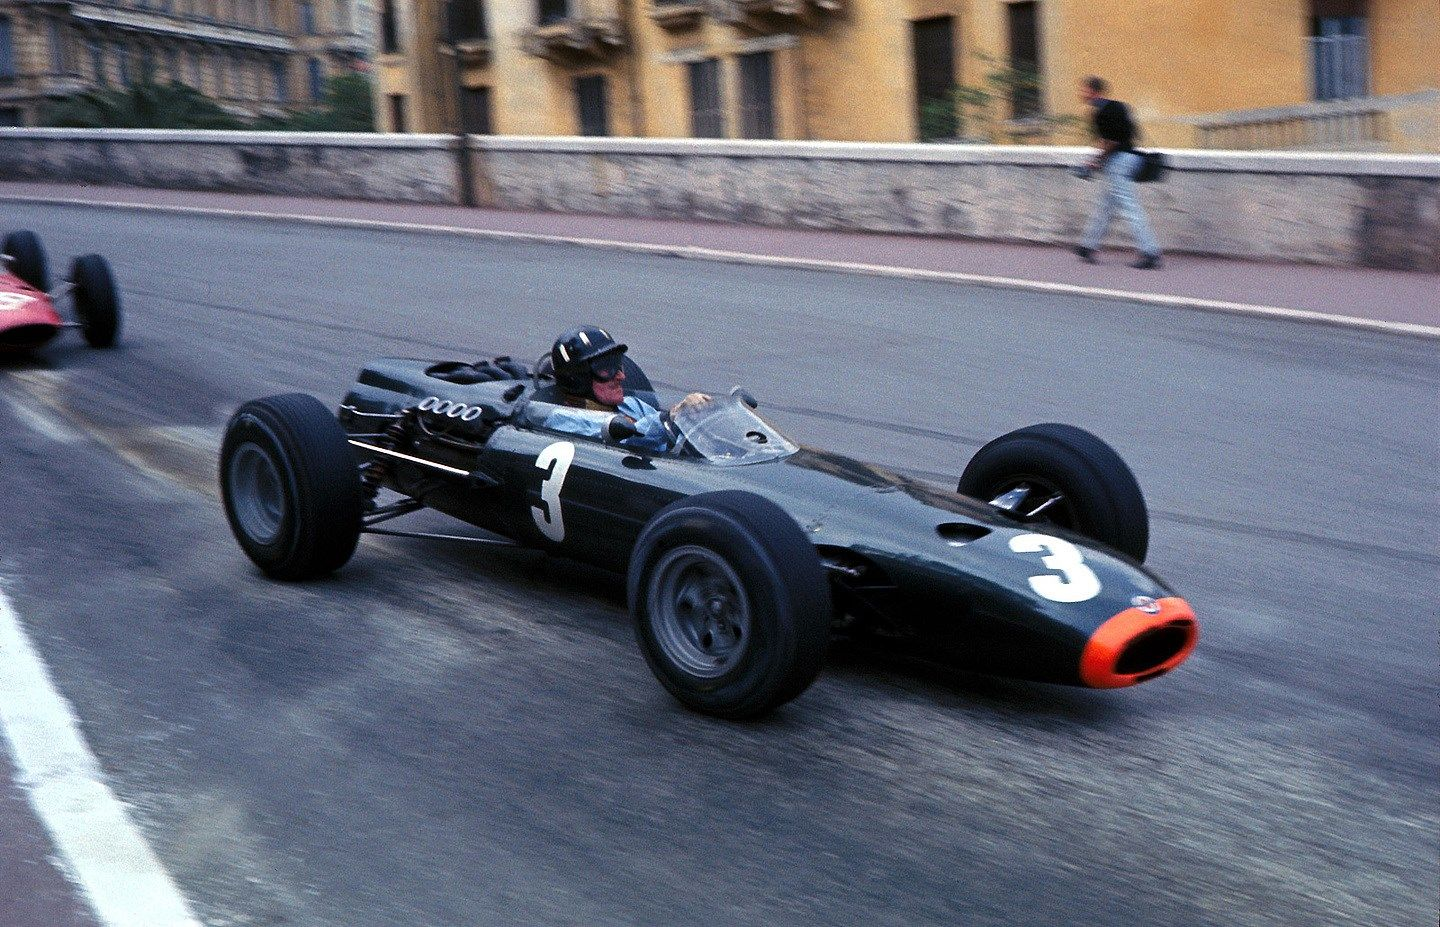 DRIVE TO SURVIVE F1 CAR NO WINGS 1965